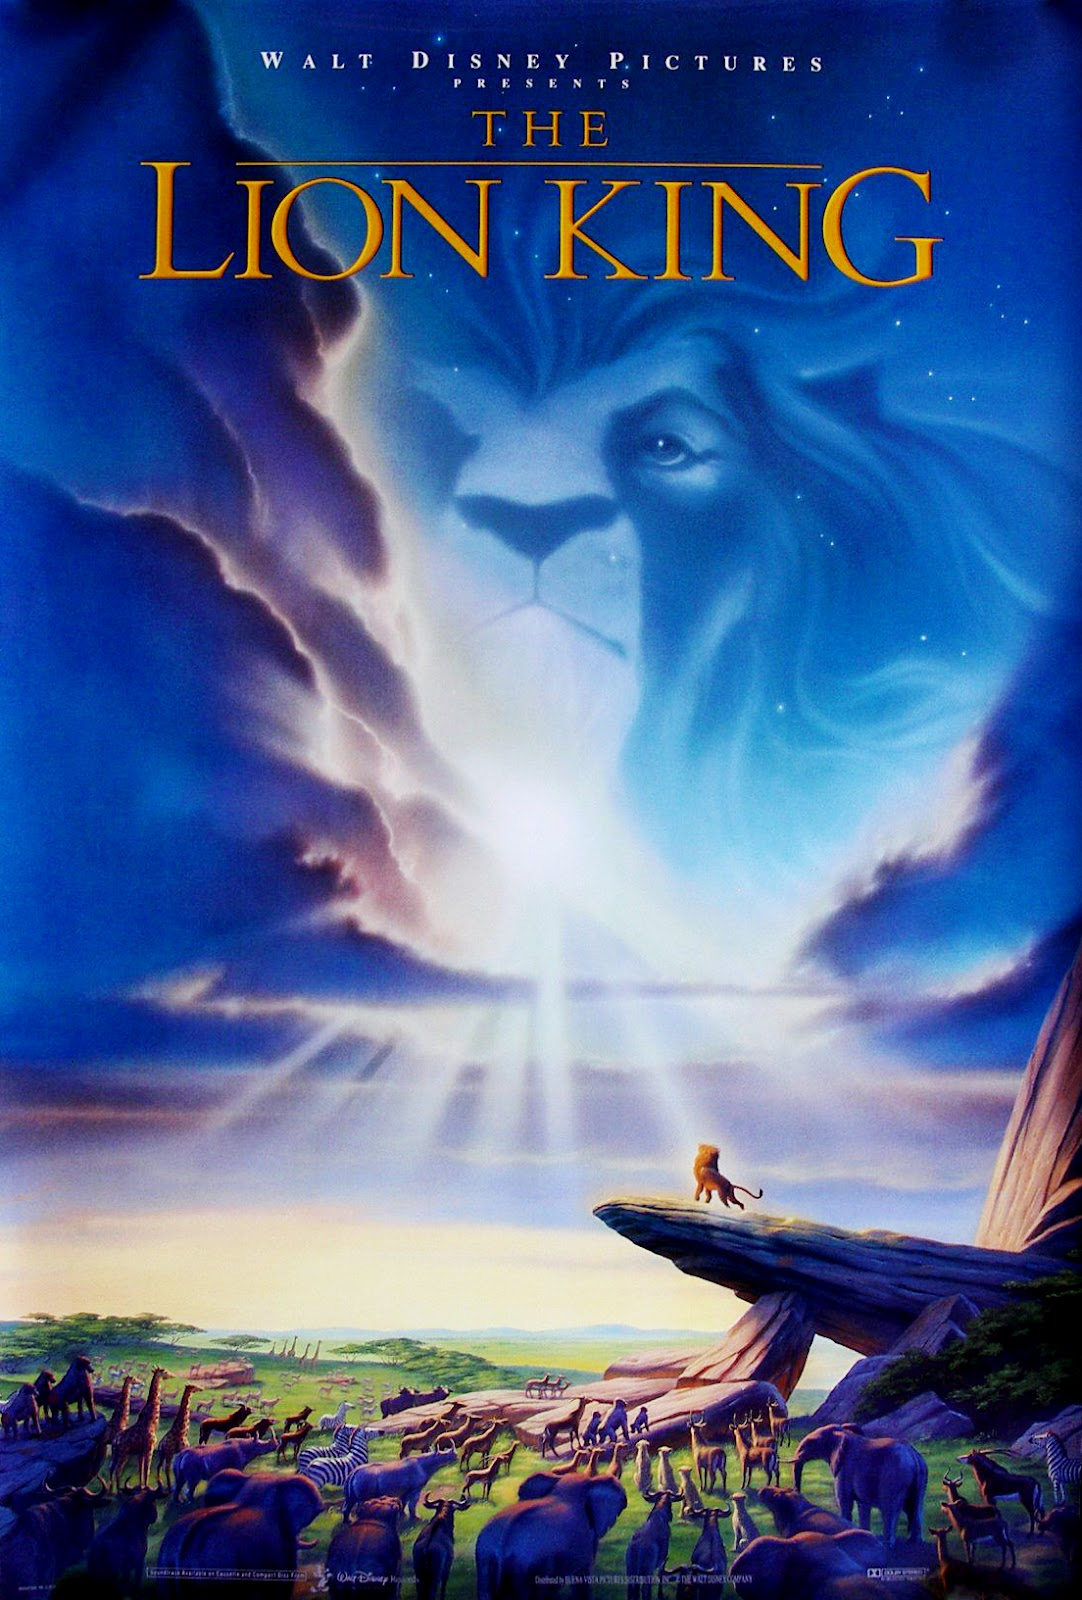 Lion King (1994) by John Alvin